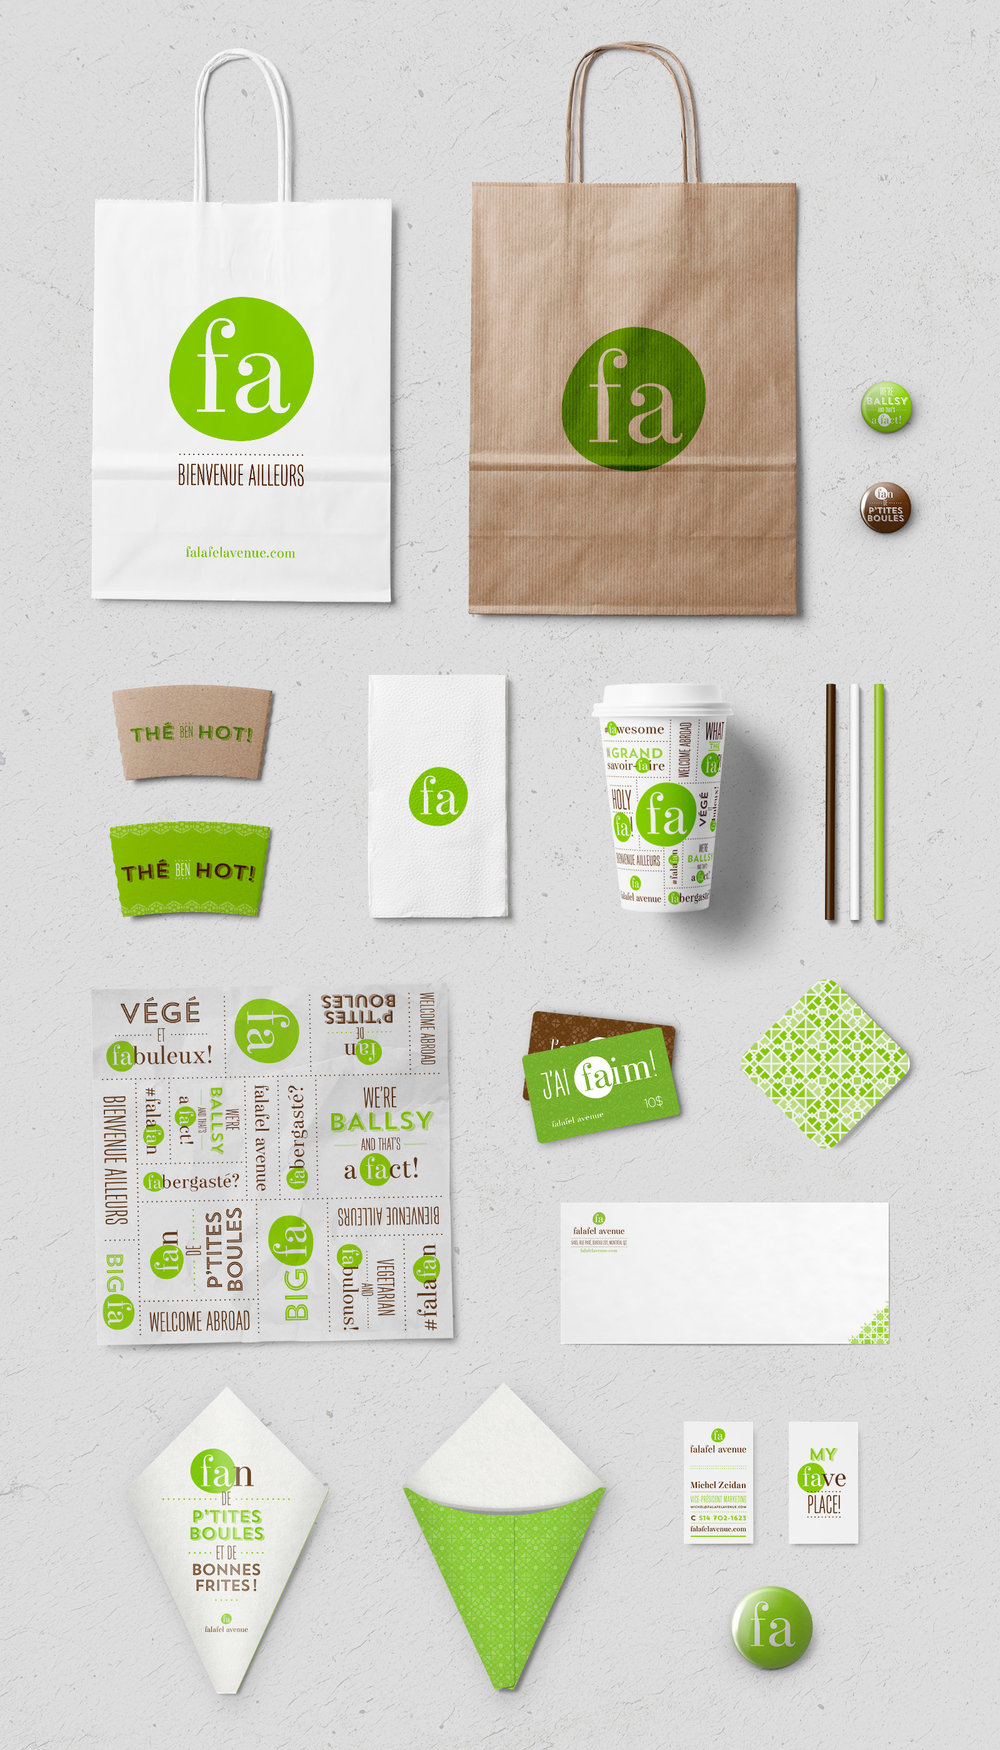 FA_Stationery_Mockup_web4.jpg